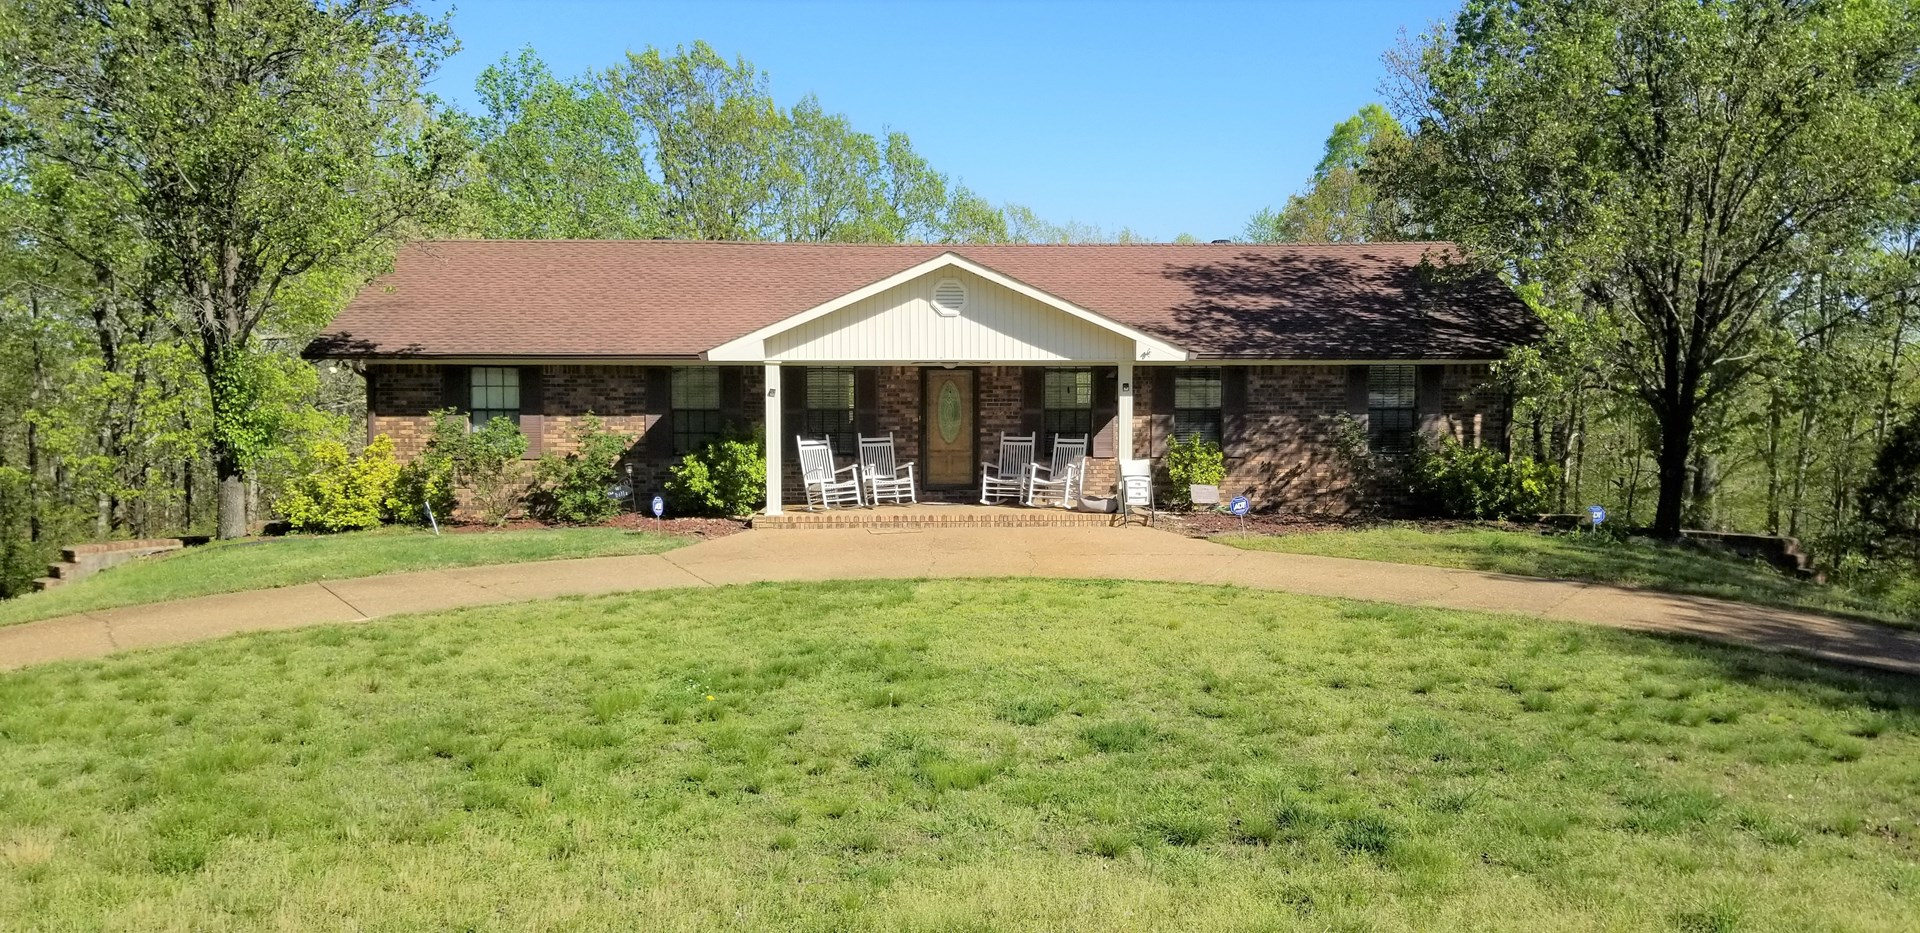 Country Home w/17 Acres in Linden, TN Minutes From Town